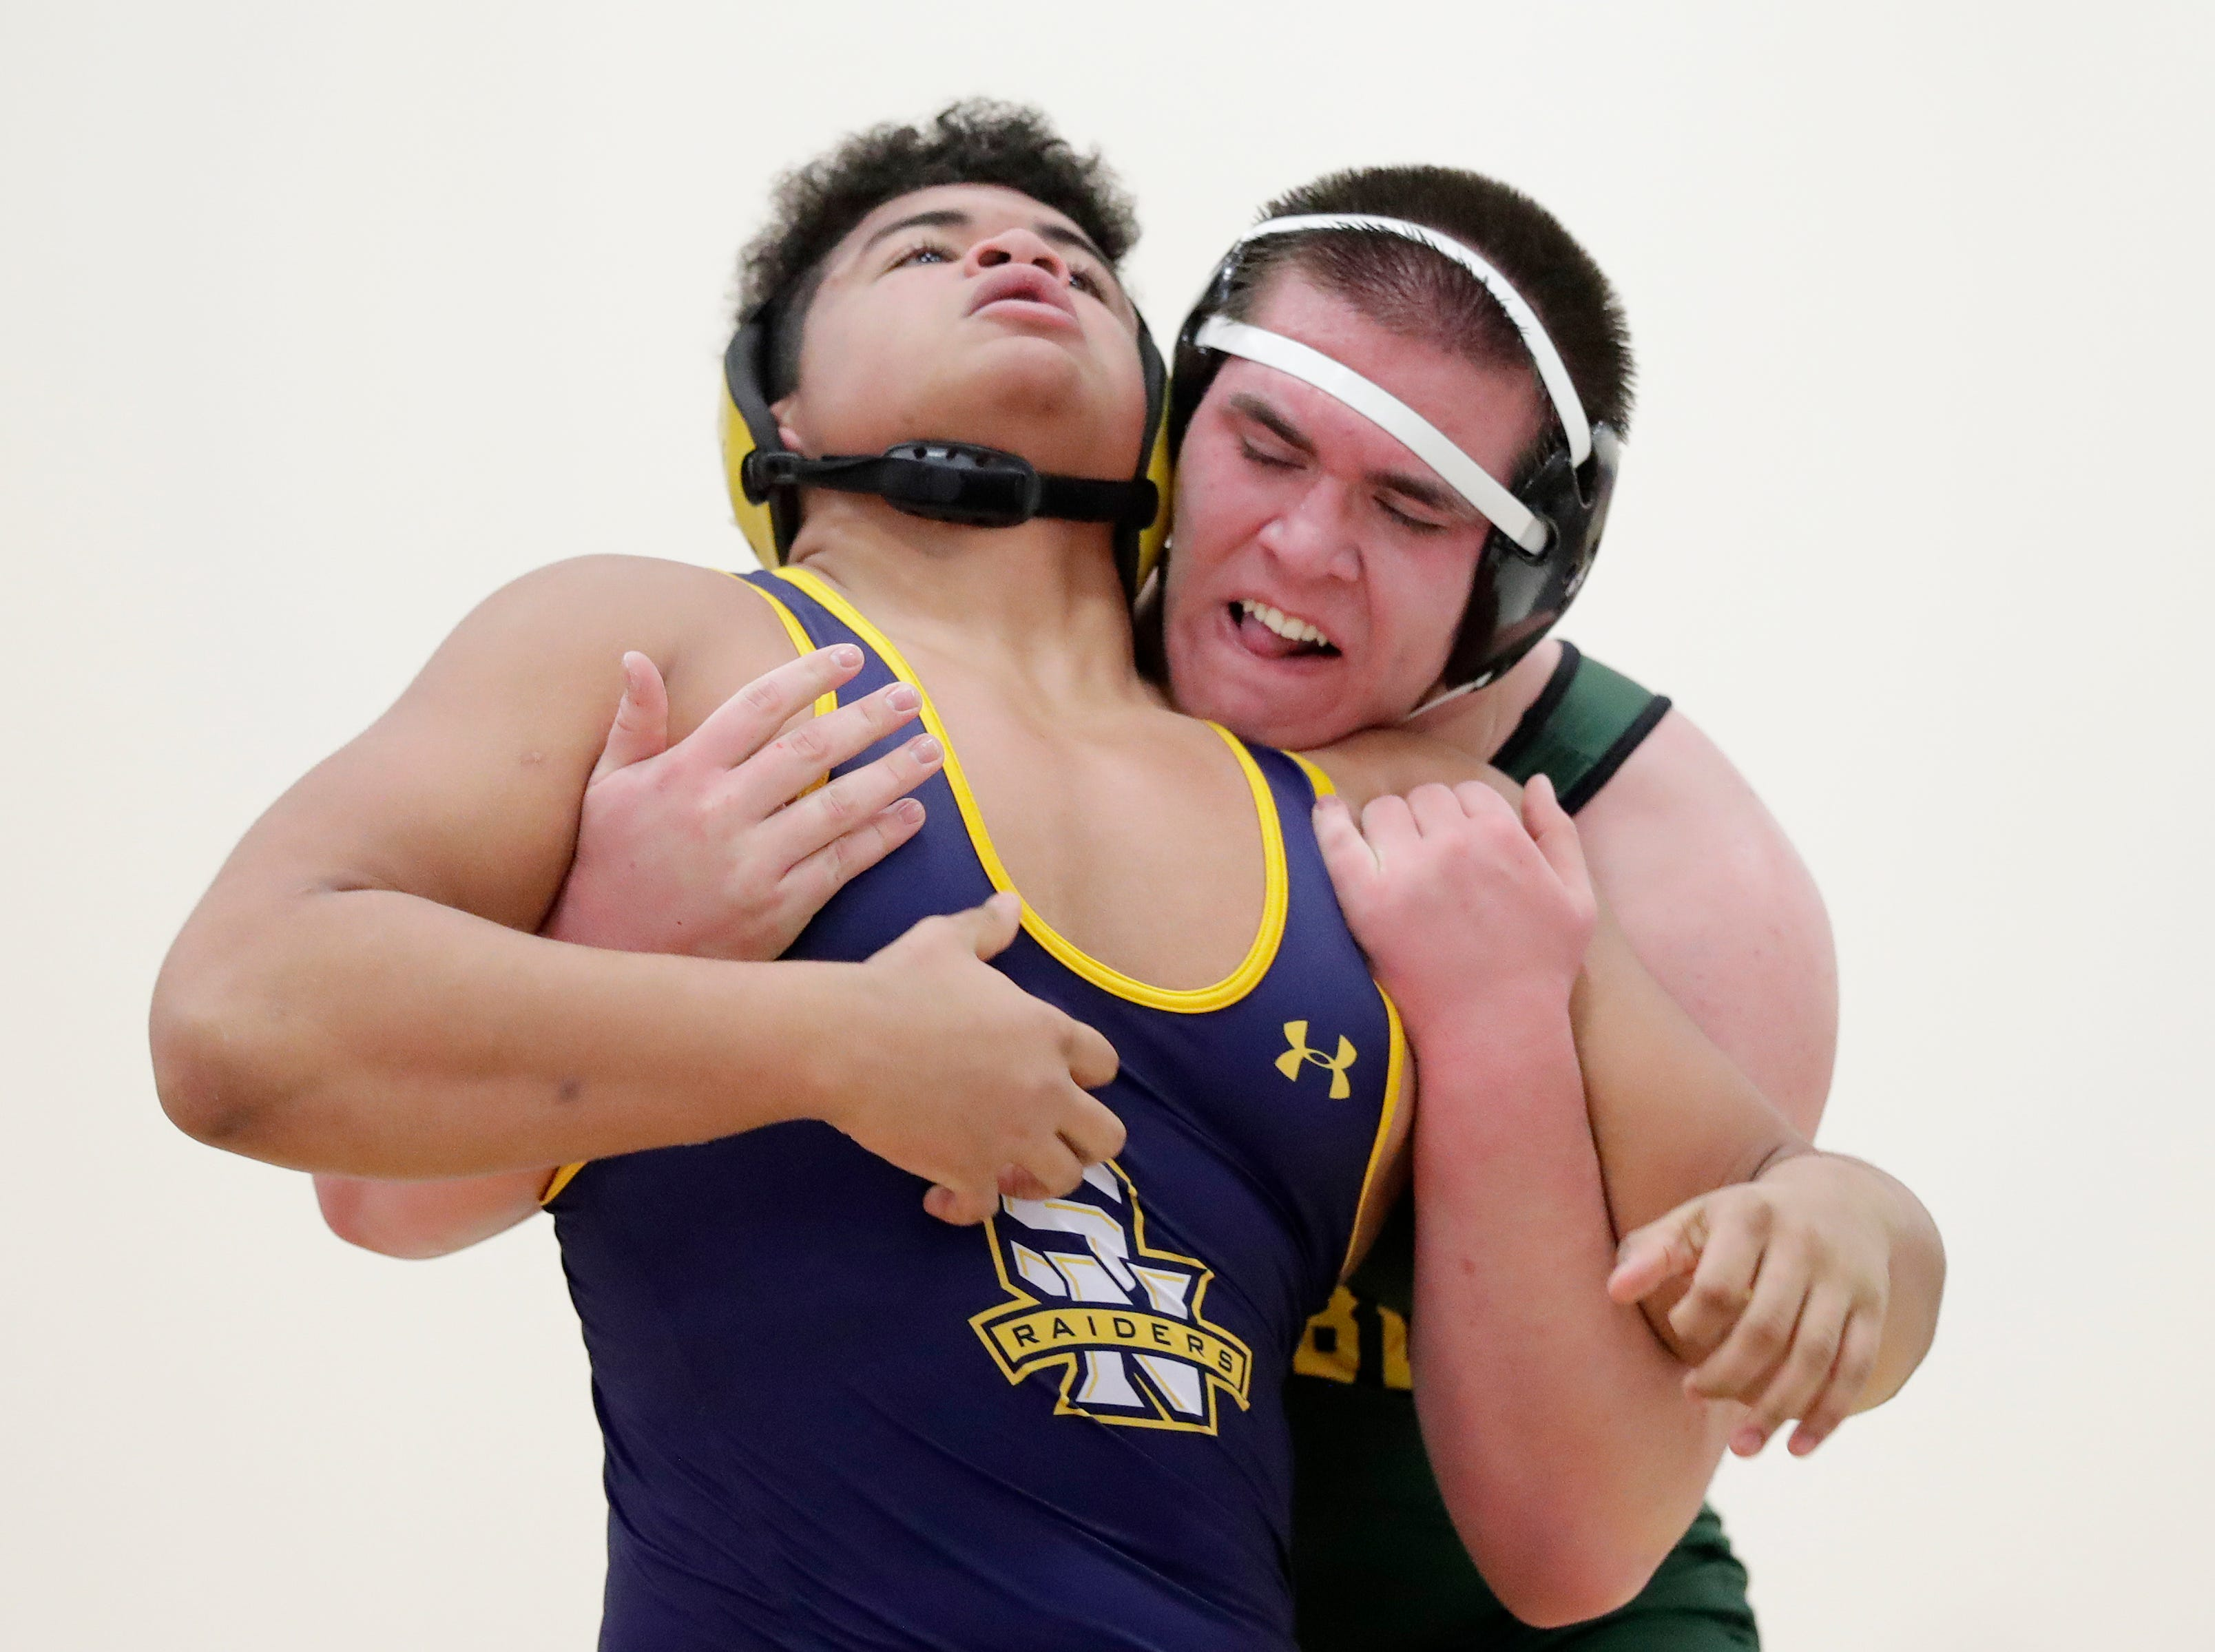 Green Bay Preble's Jakob Wolfe wrestles Sheboygan North's Cassius Rohadfox in a 285-pound bout at De Pere high school on Thursday, December 13, 2018 in De Pere, Wis.